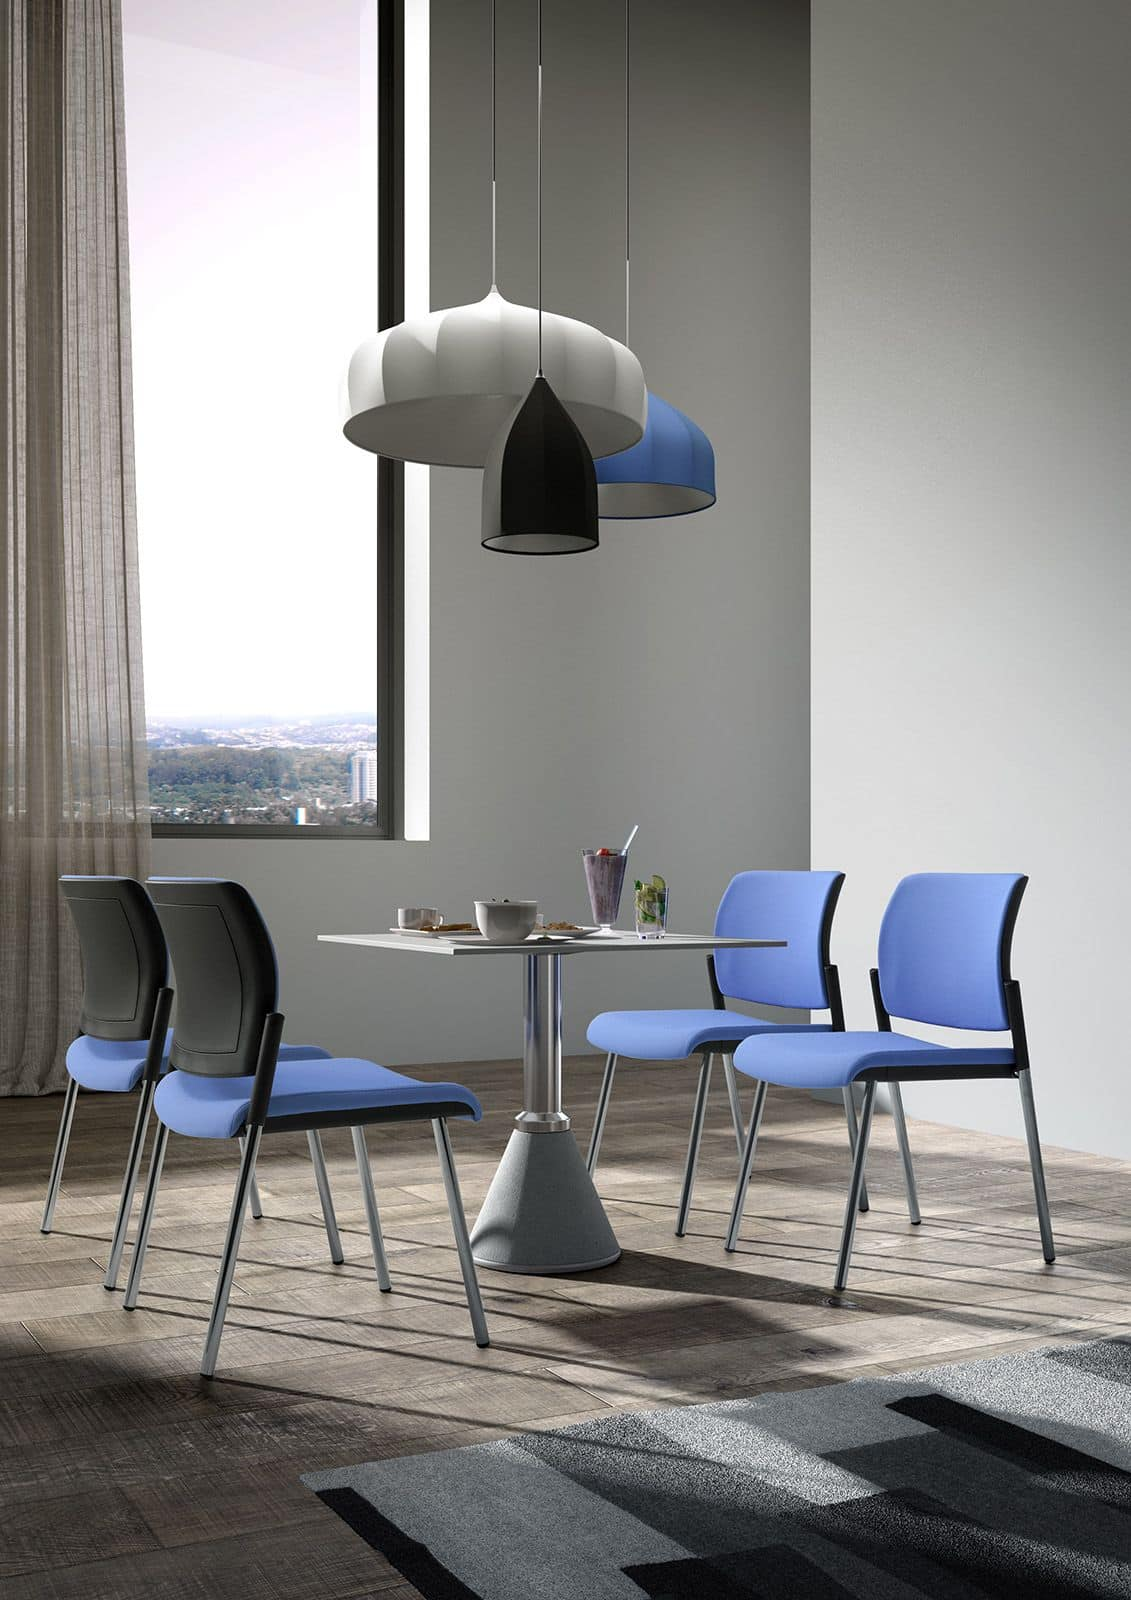 Wiki 4g, Chair with mesh backrest ideal for office